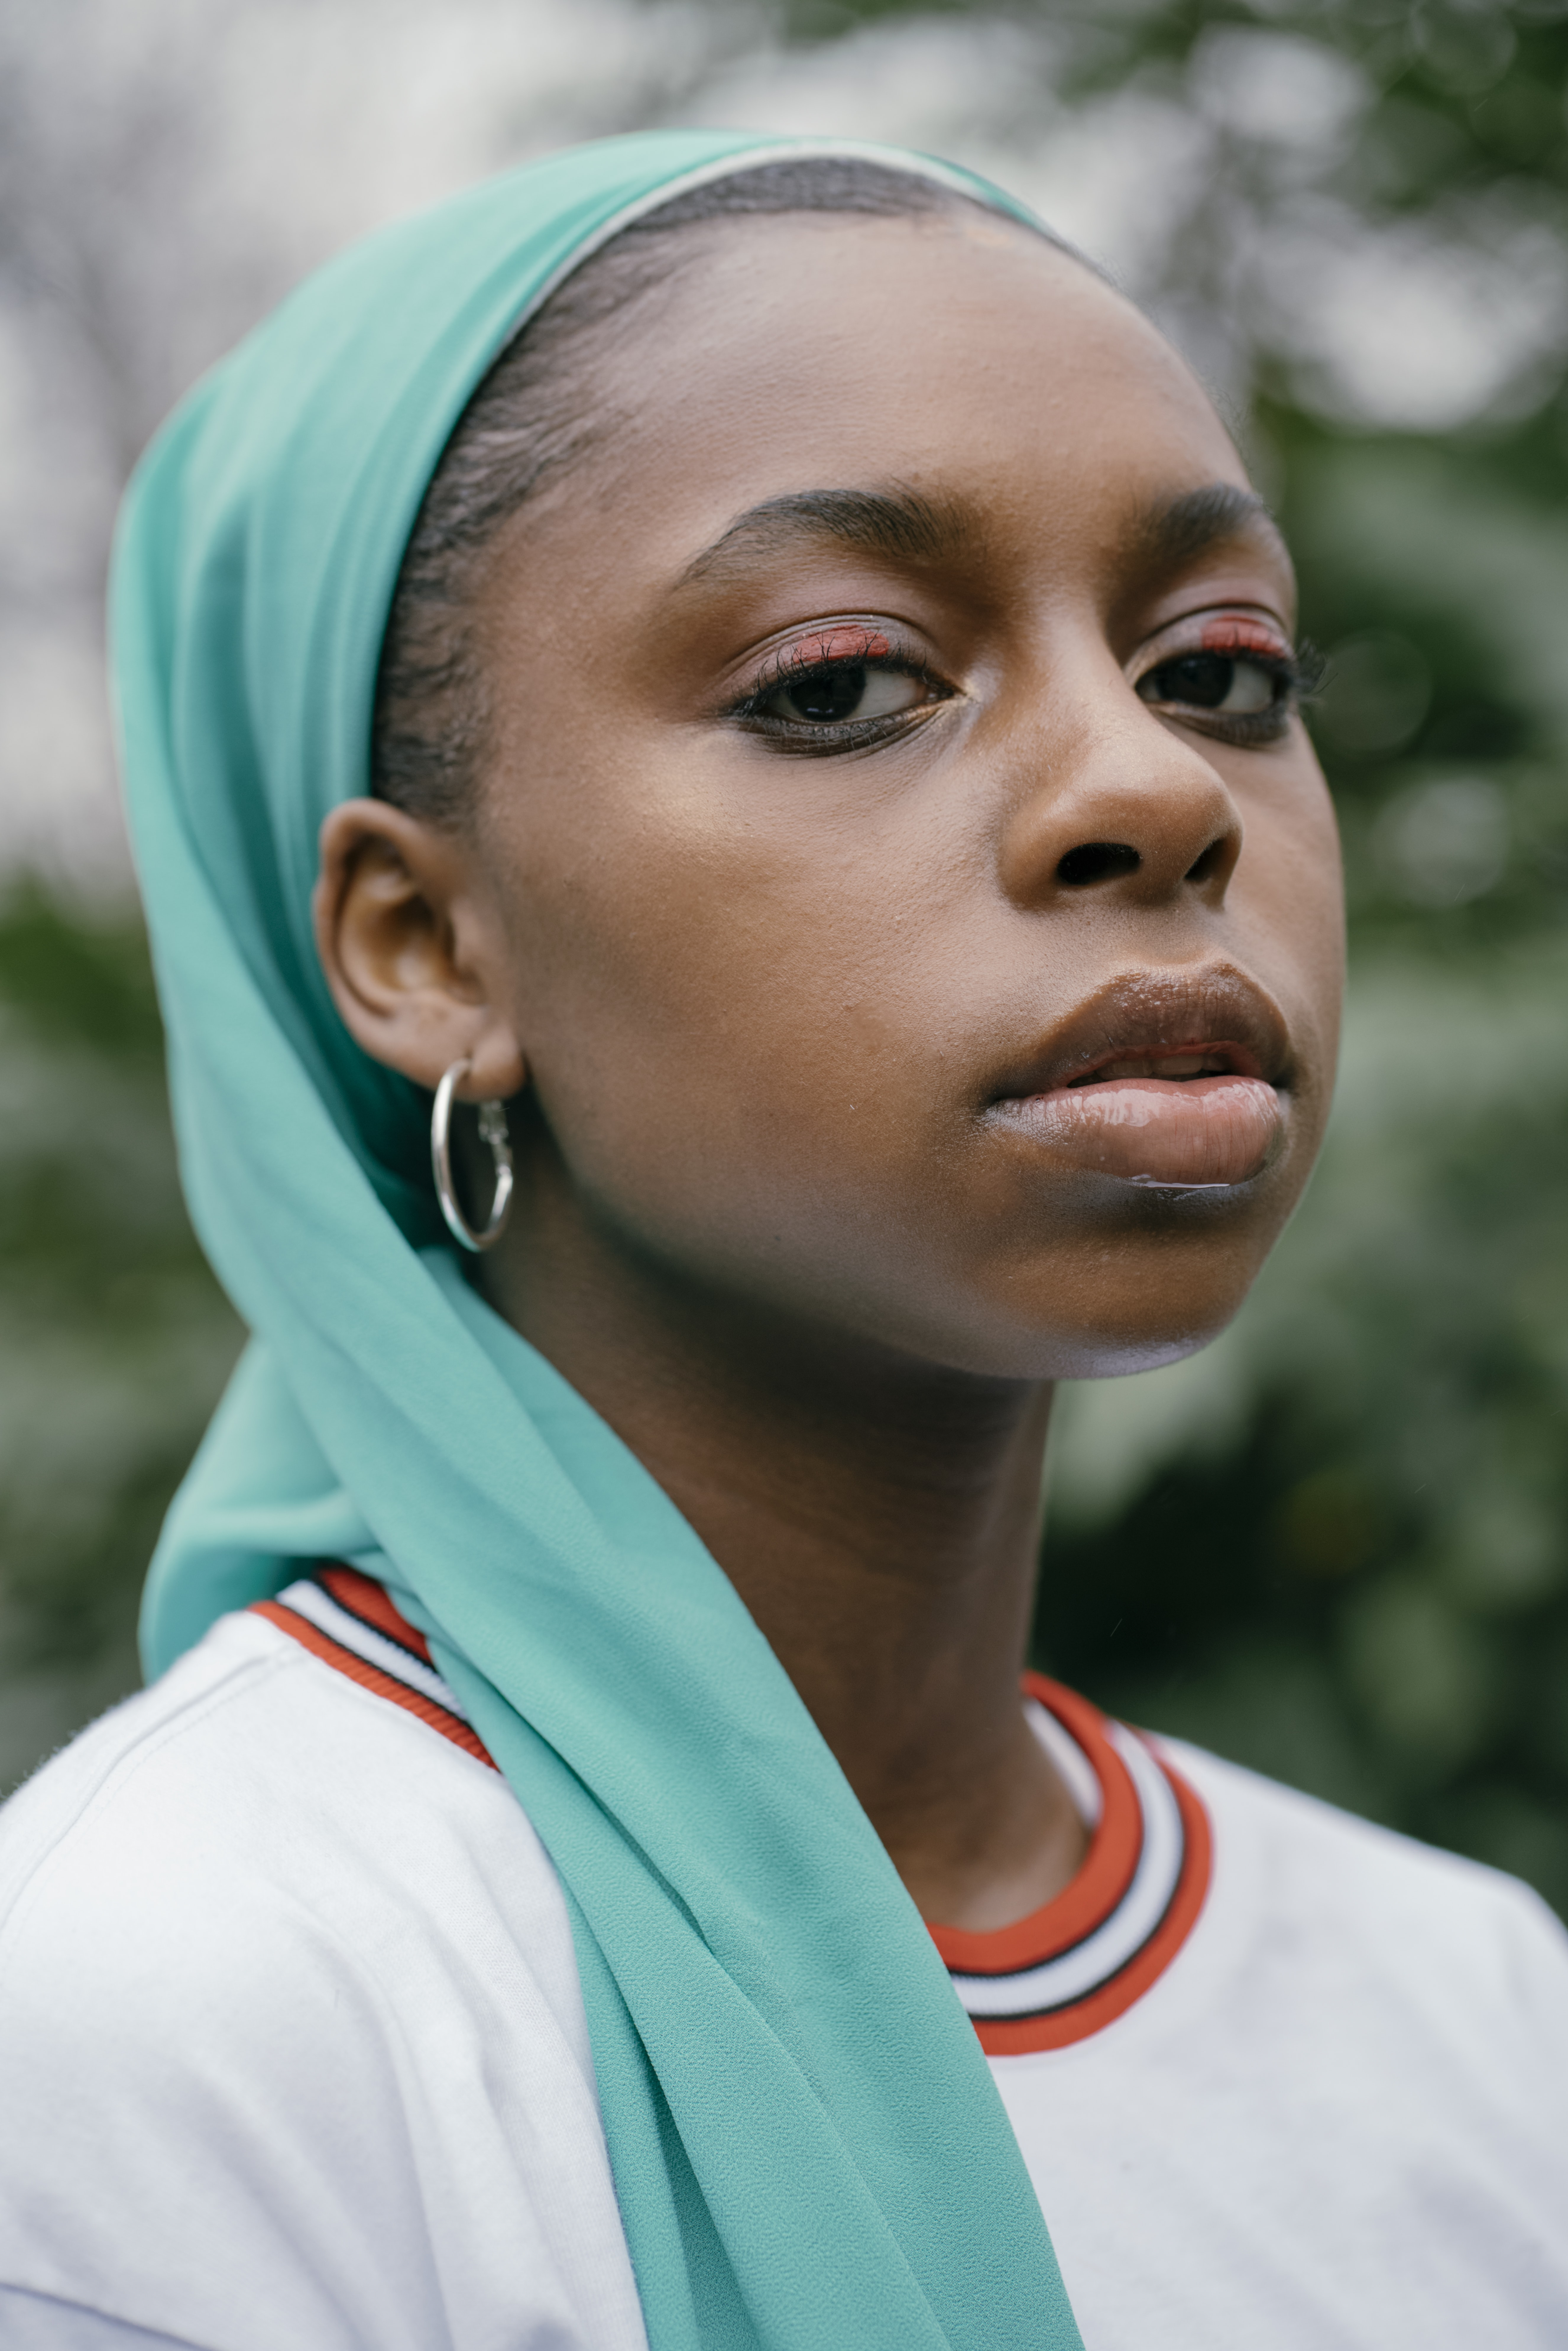 woman in orange and white crew-neck shirt and green headscarf